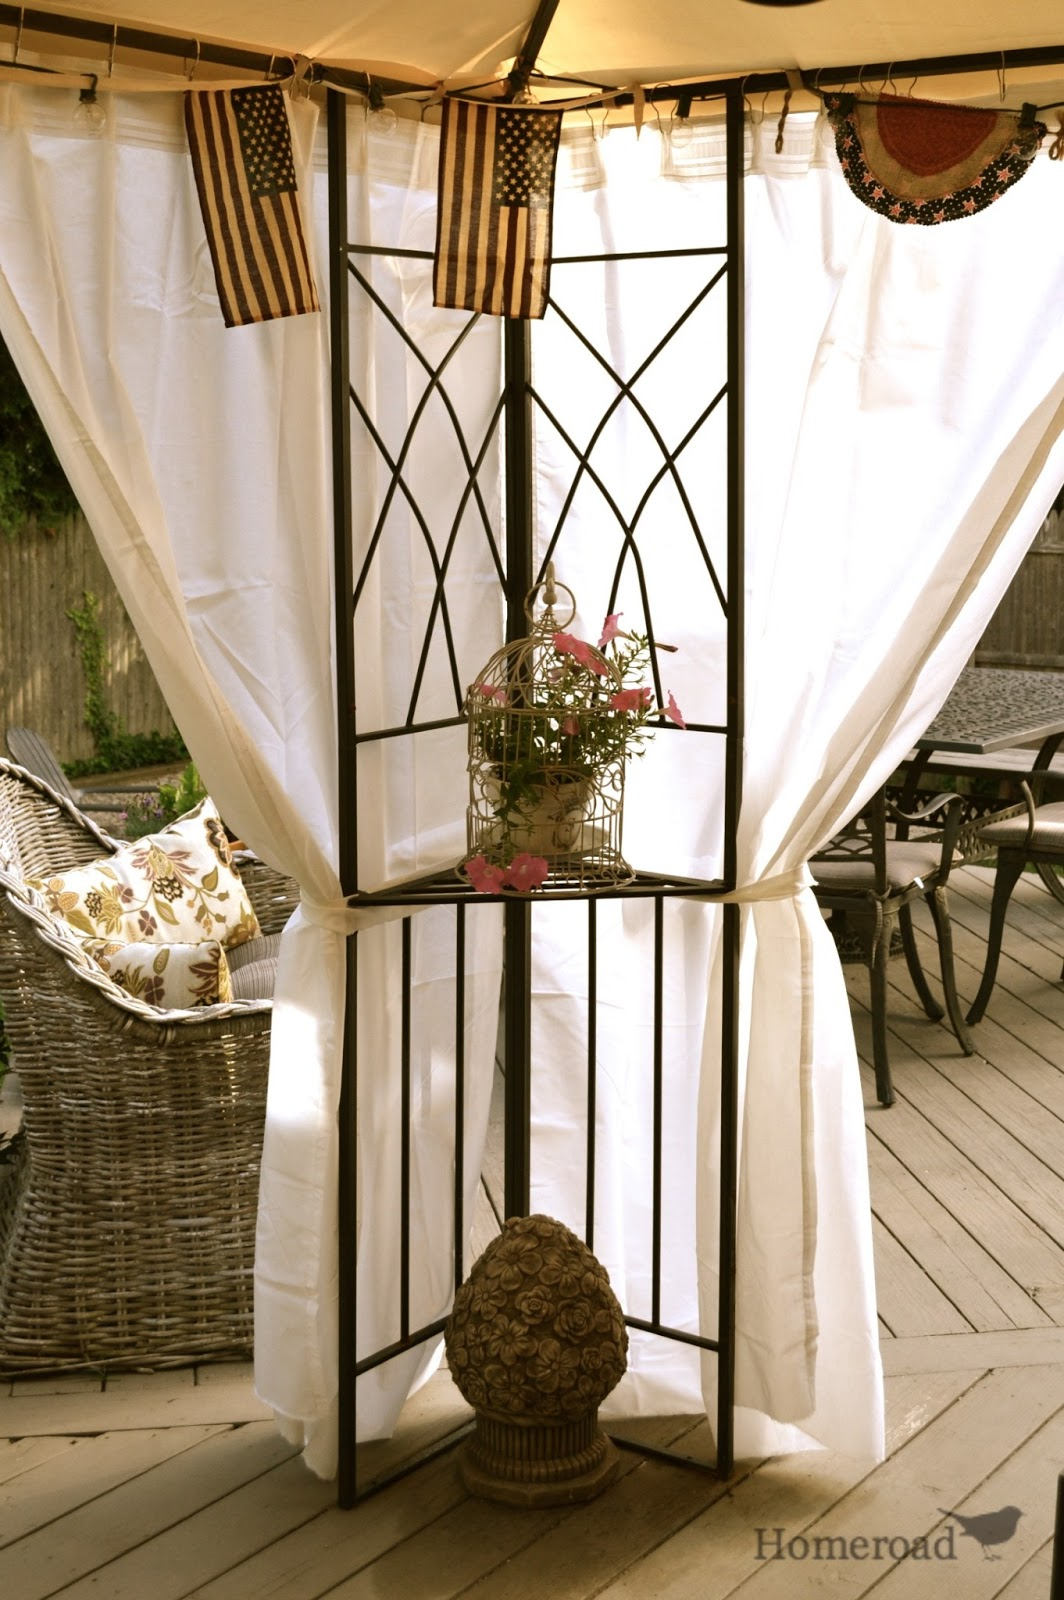 Diy outdoor curtains - Homeroad Diy Outdoor Canopy Curtains